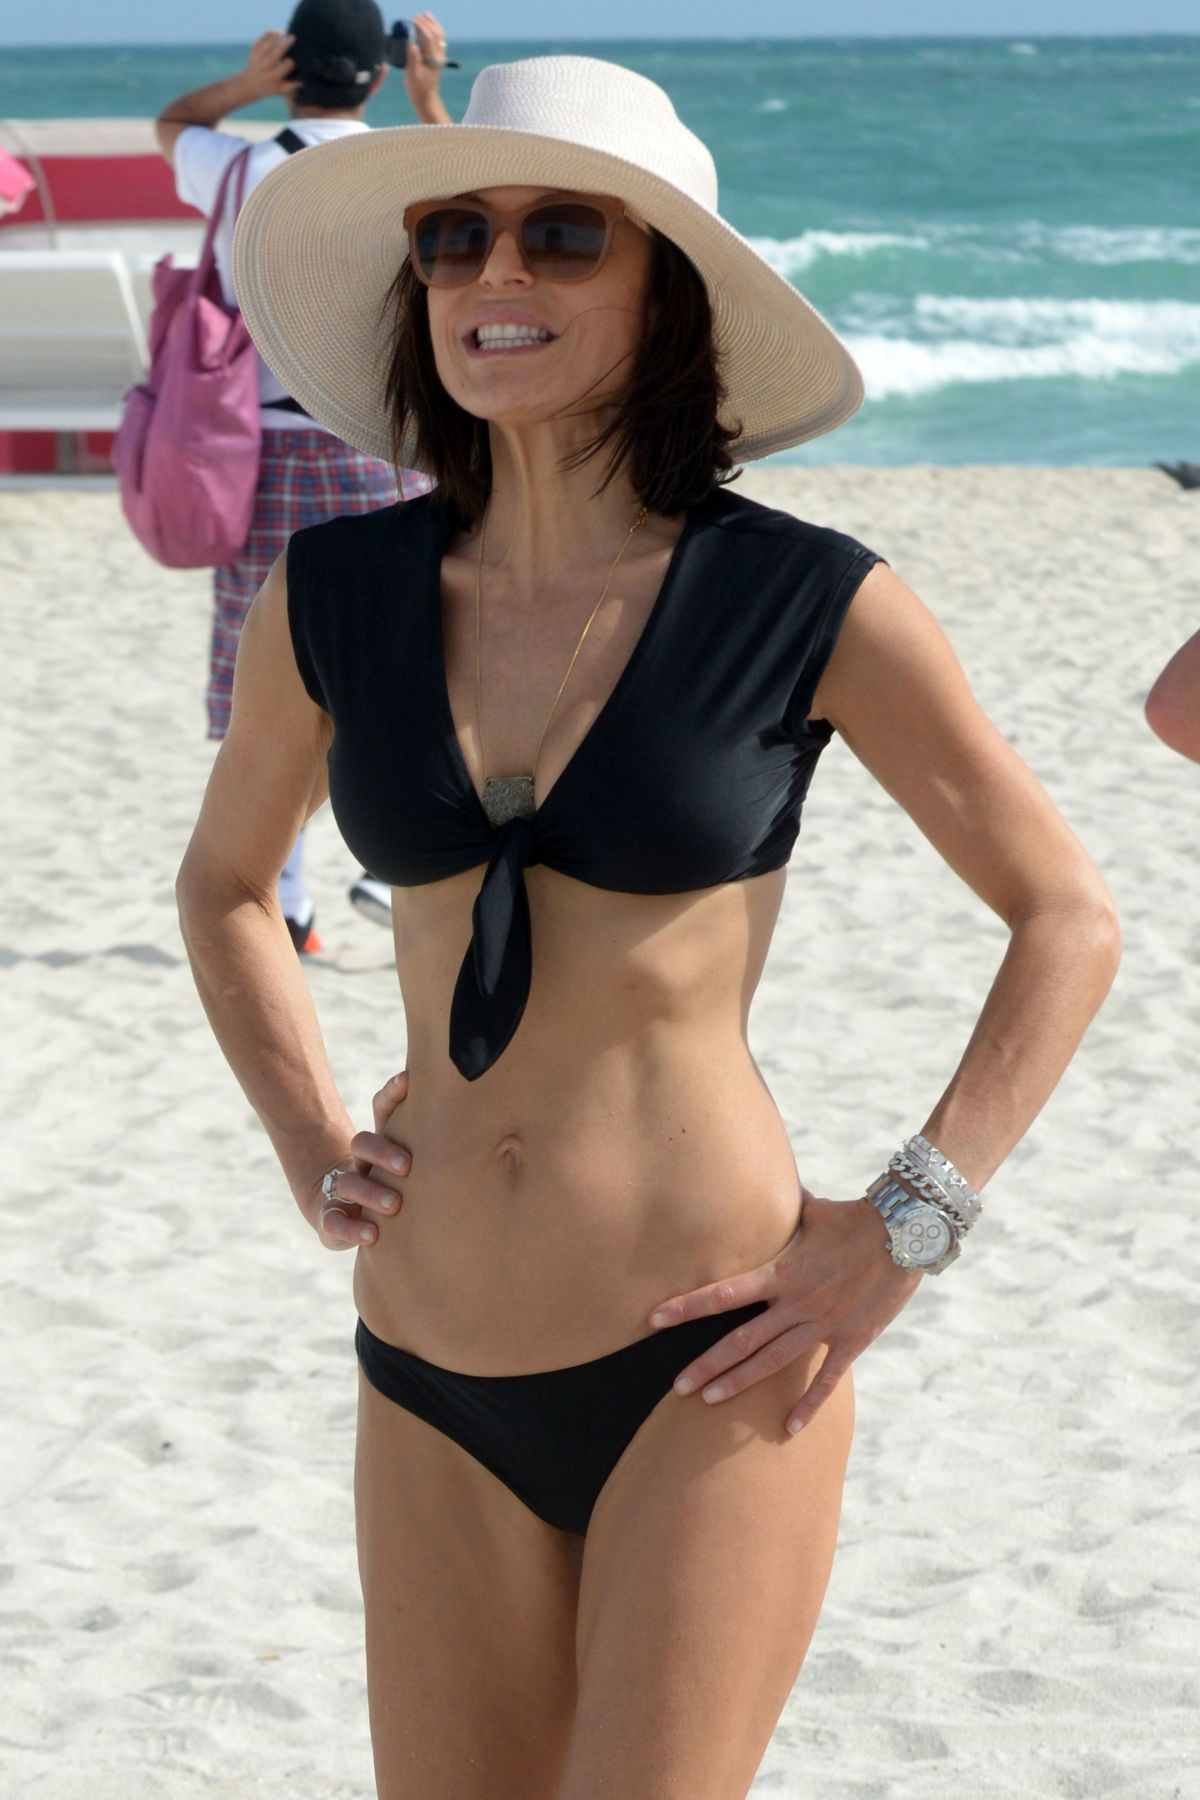 BETHENNY FRANKEL in Bikini on the Beach in Miami 12/05/2016   bethenny-frankel-in-bikini-on-the-beach-in-miami-12-05-2016_21